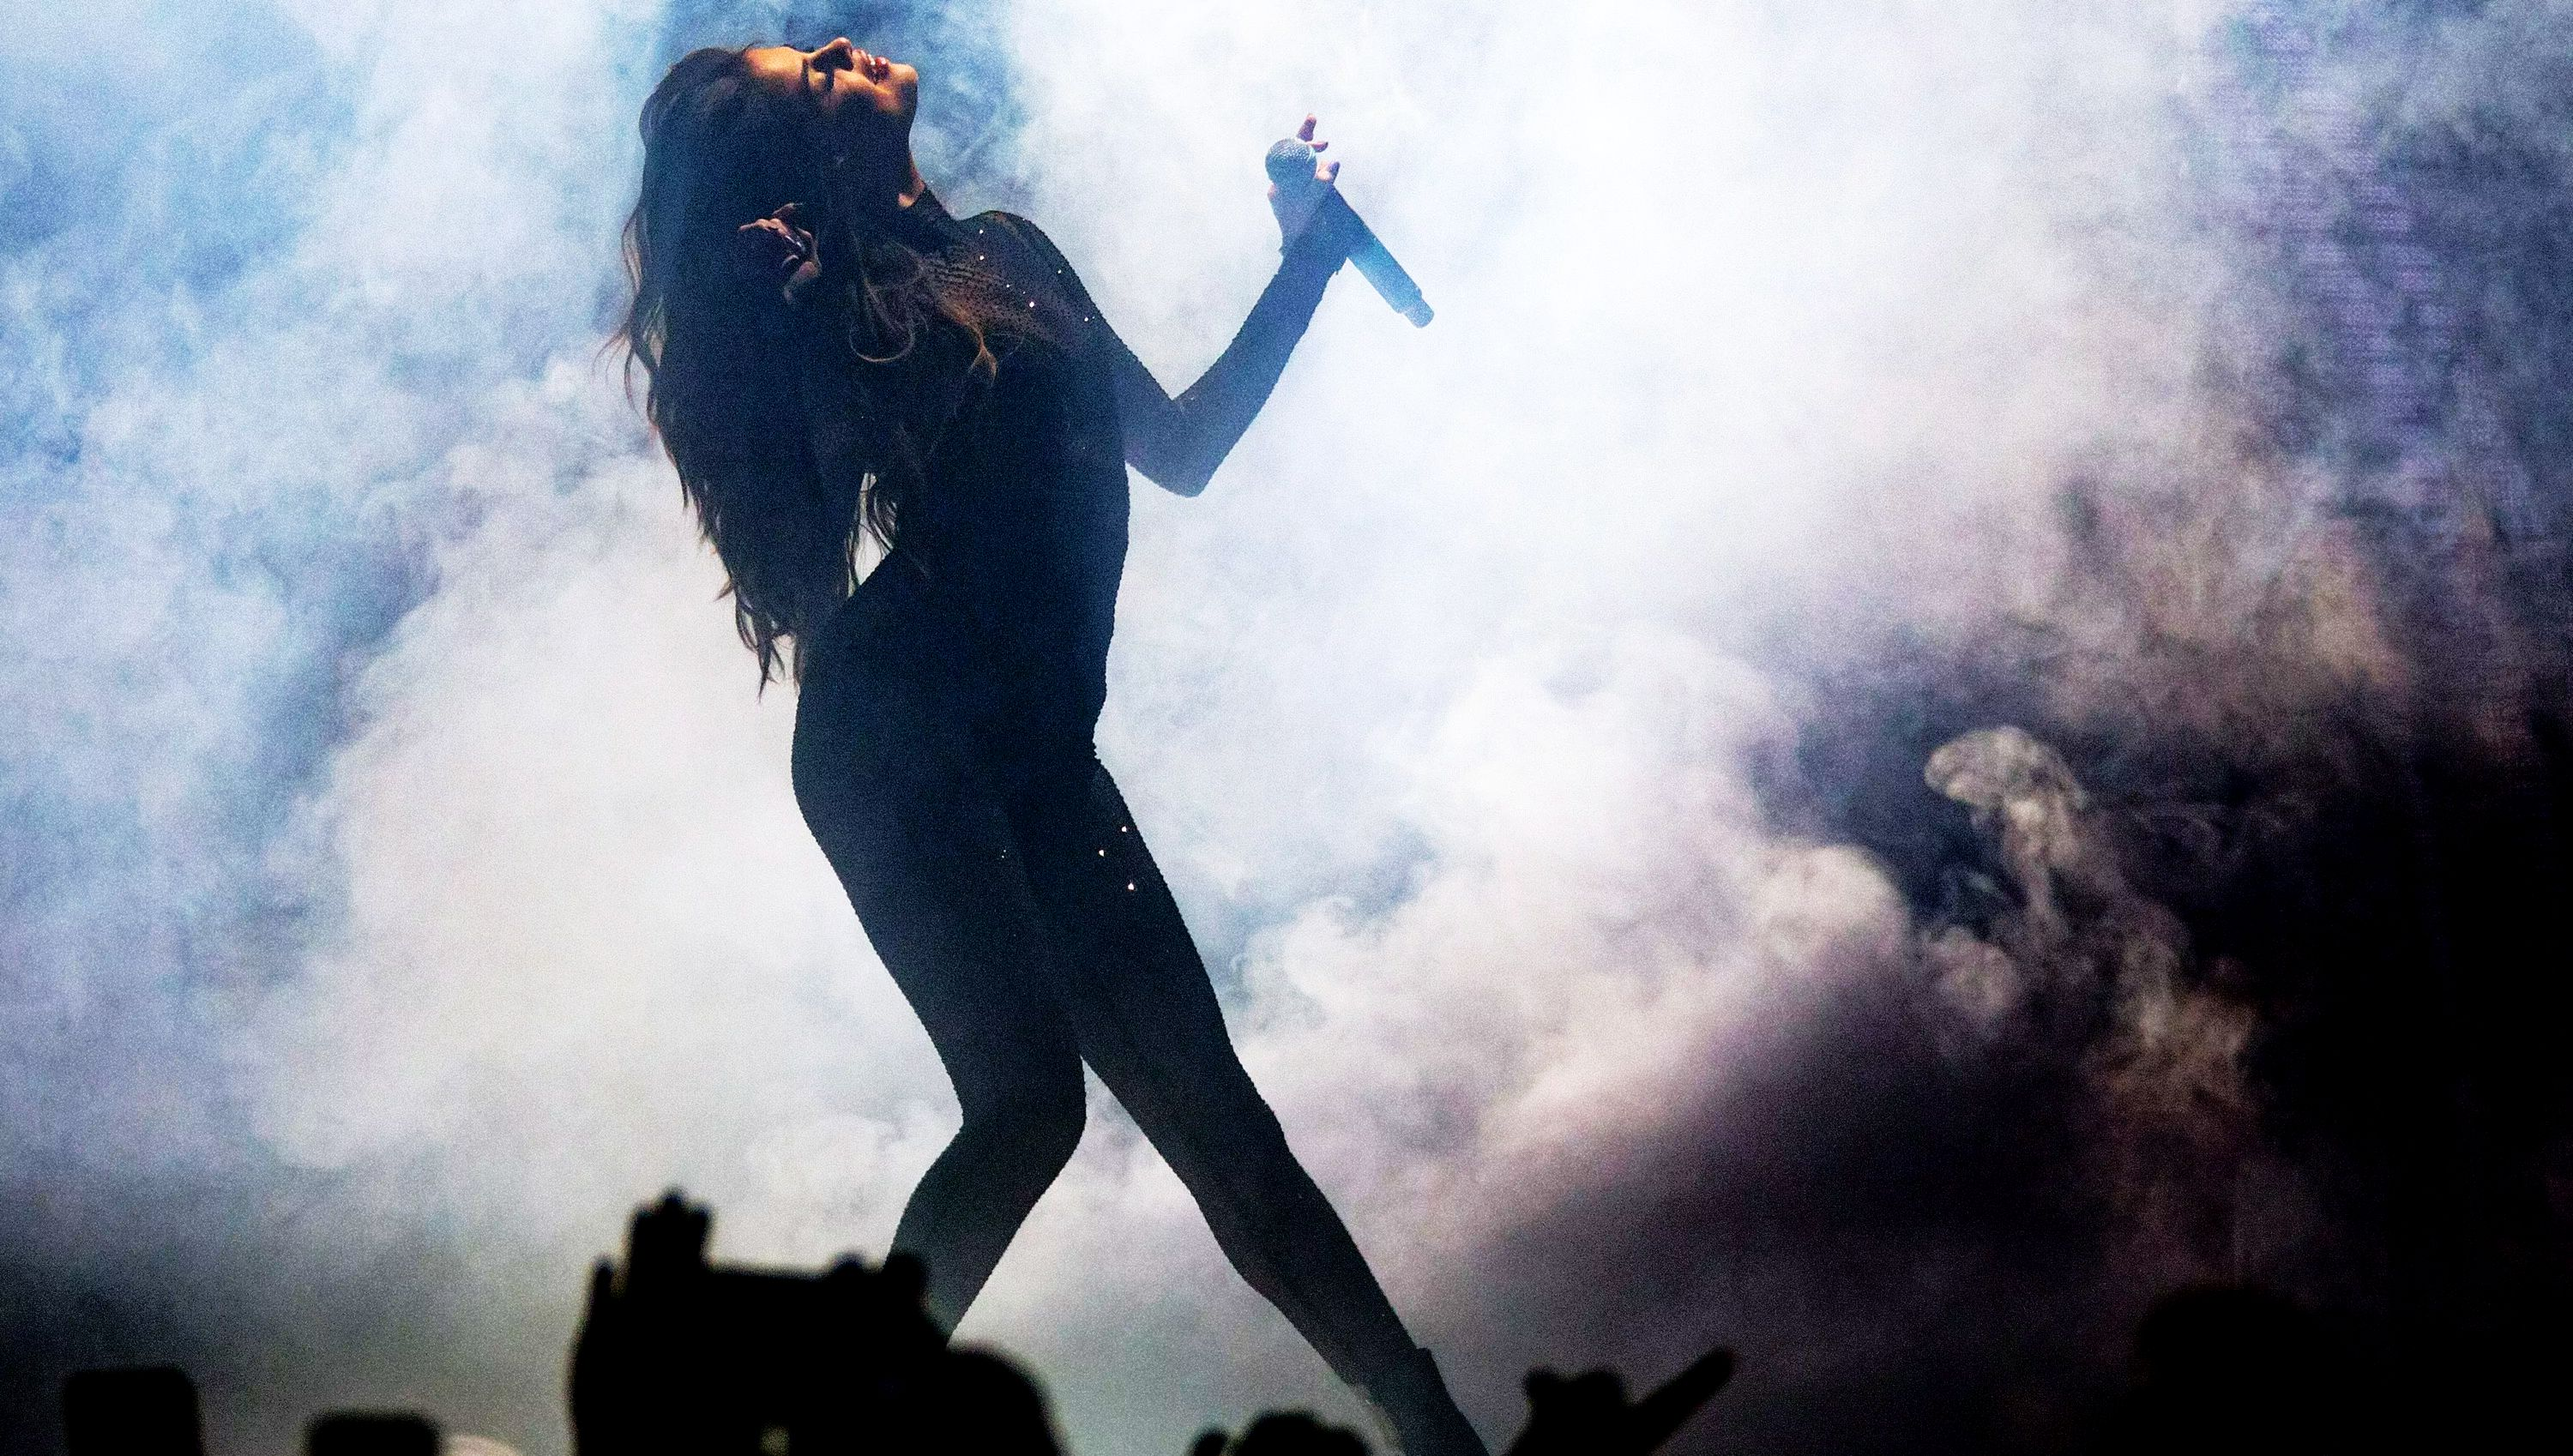 AUBURN HILLS, MI - JUNE 24: Selena Gomez performs during the Revival tour at The Palace of Auburn Hills on June 25, 2016 in Auburn Hills, Michigan.